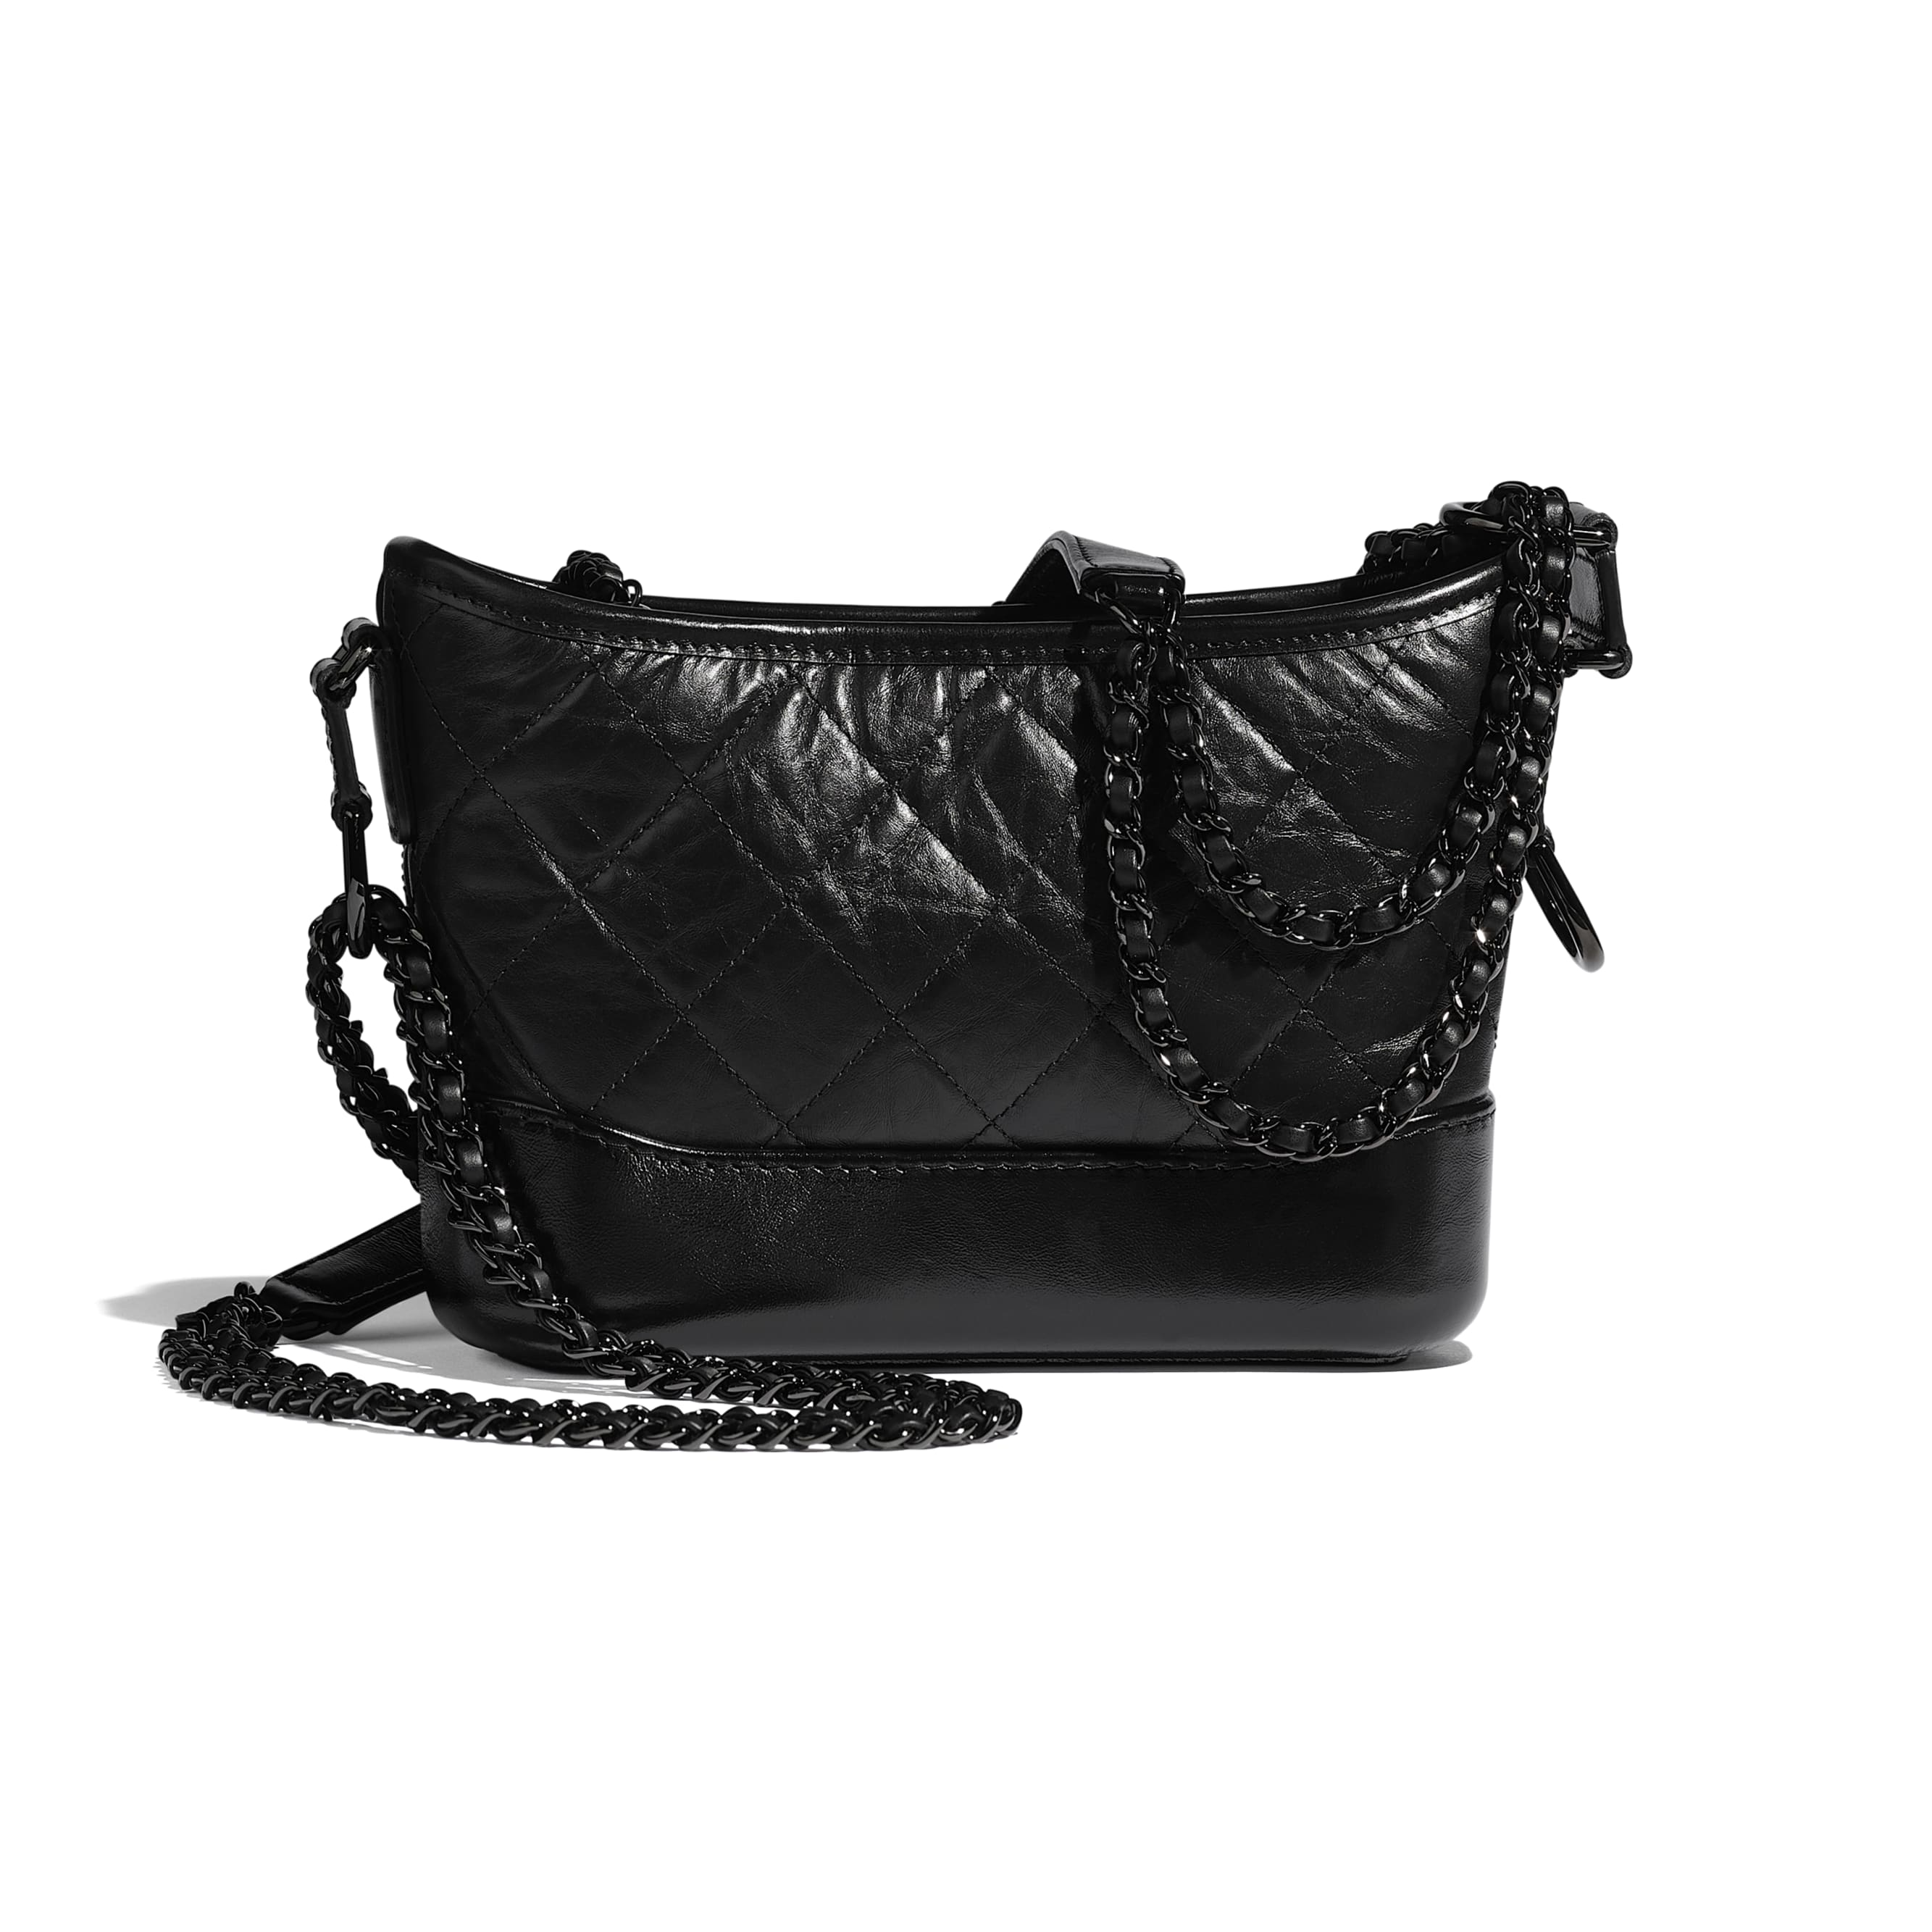 CHANEL'S GABRIELLE Small Hobo Bag - Black - Aged Calfskin, Smooth Calfskin & Black Metal - Alternative view - see standard sized version